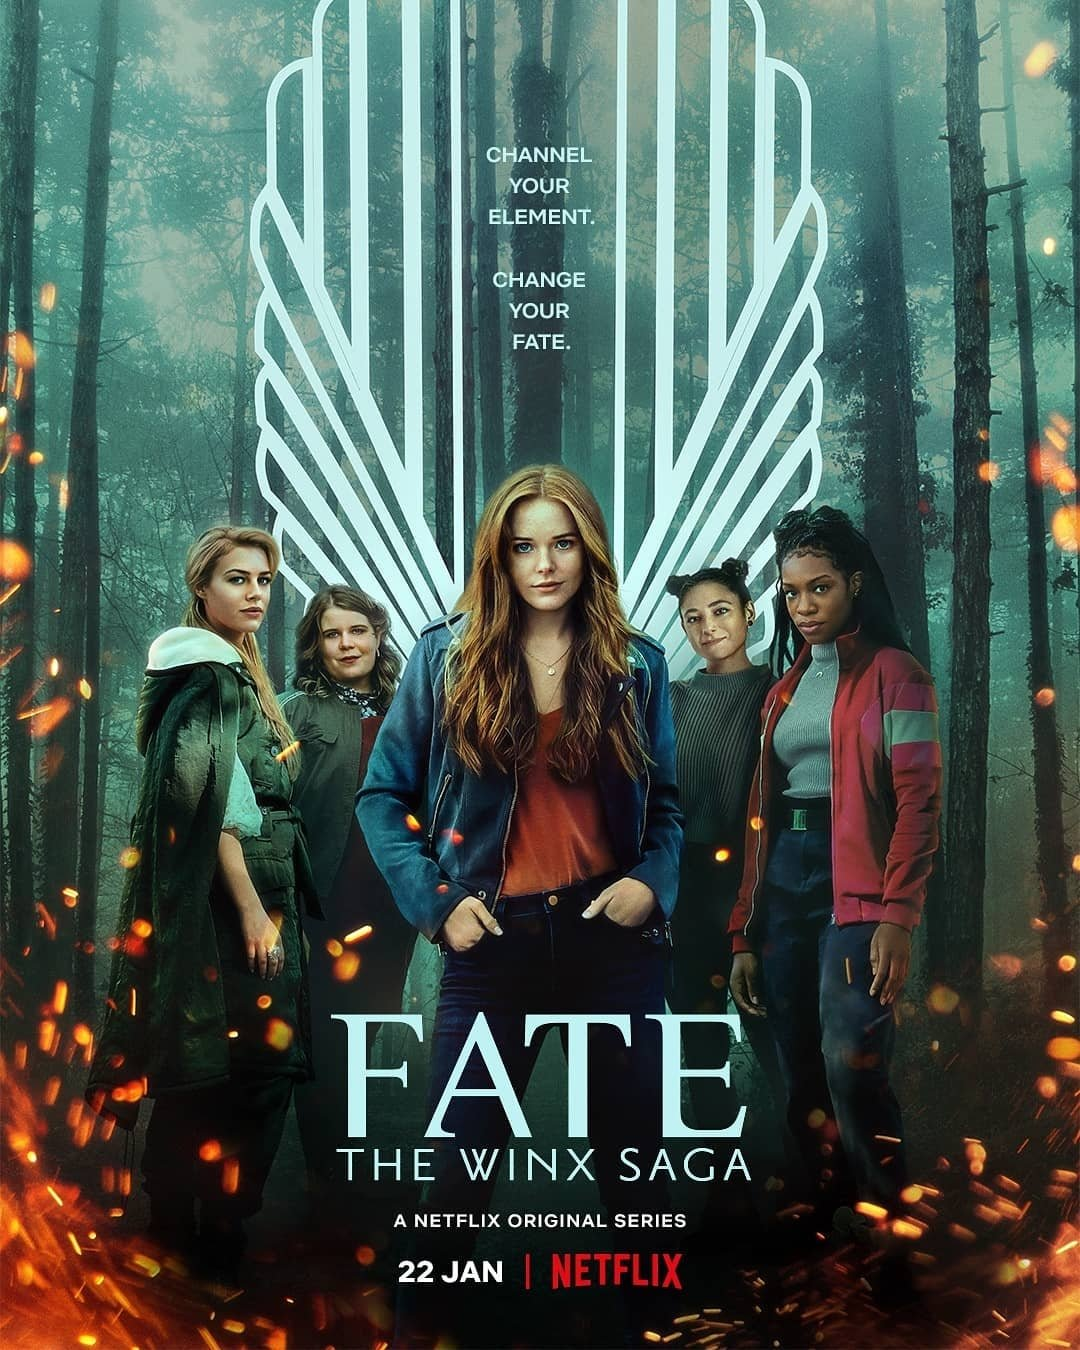 Fate The Winx Saga S01 2021 Hindi Dubbed Netflix Complete Web Series 950MB HDRip Download